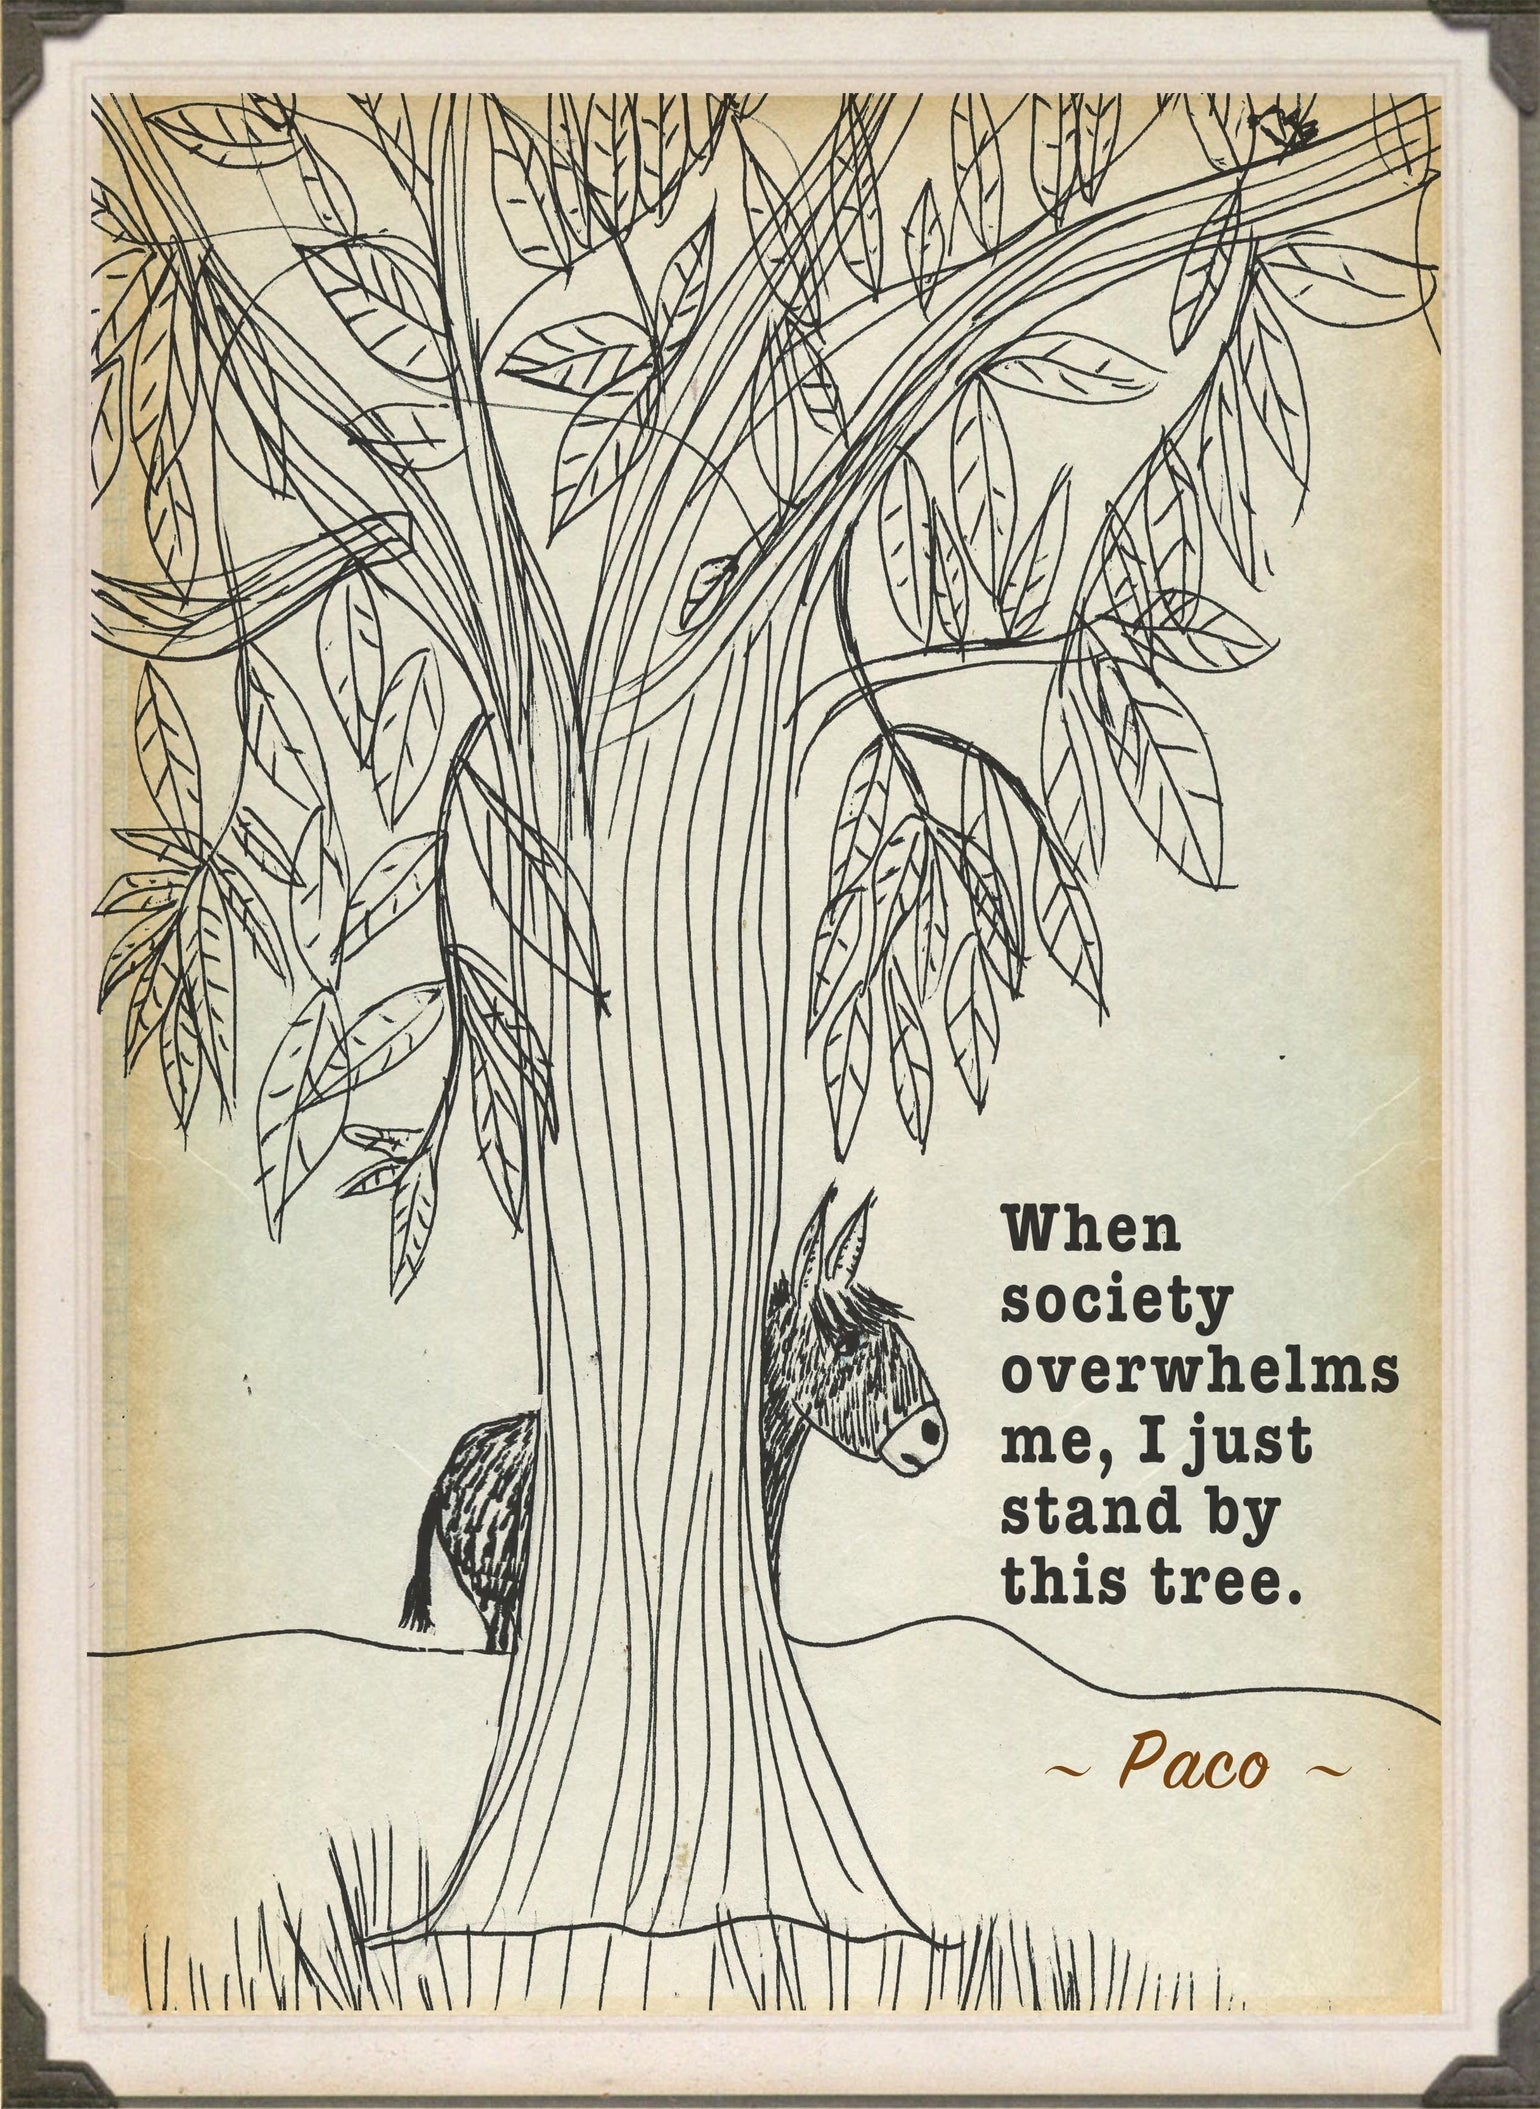 Image of Paco's Tree